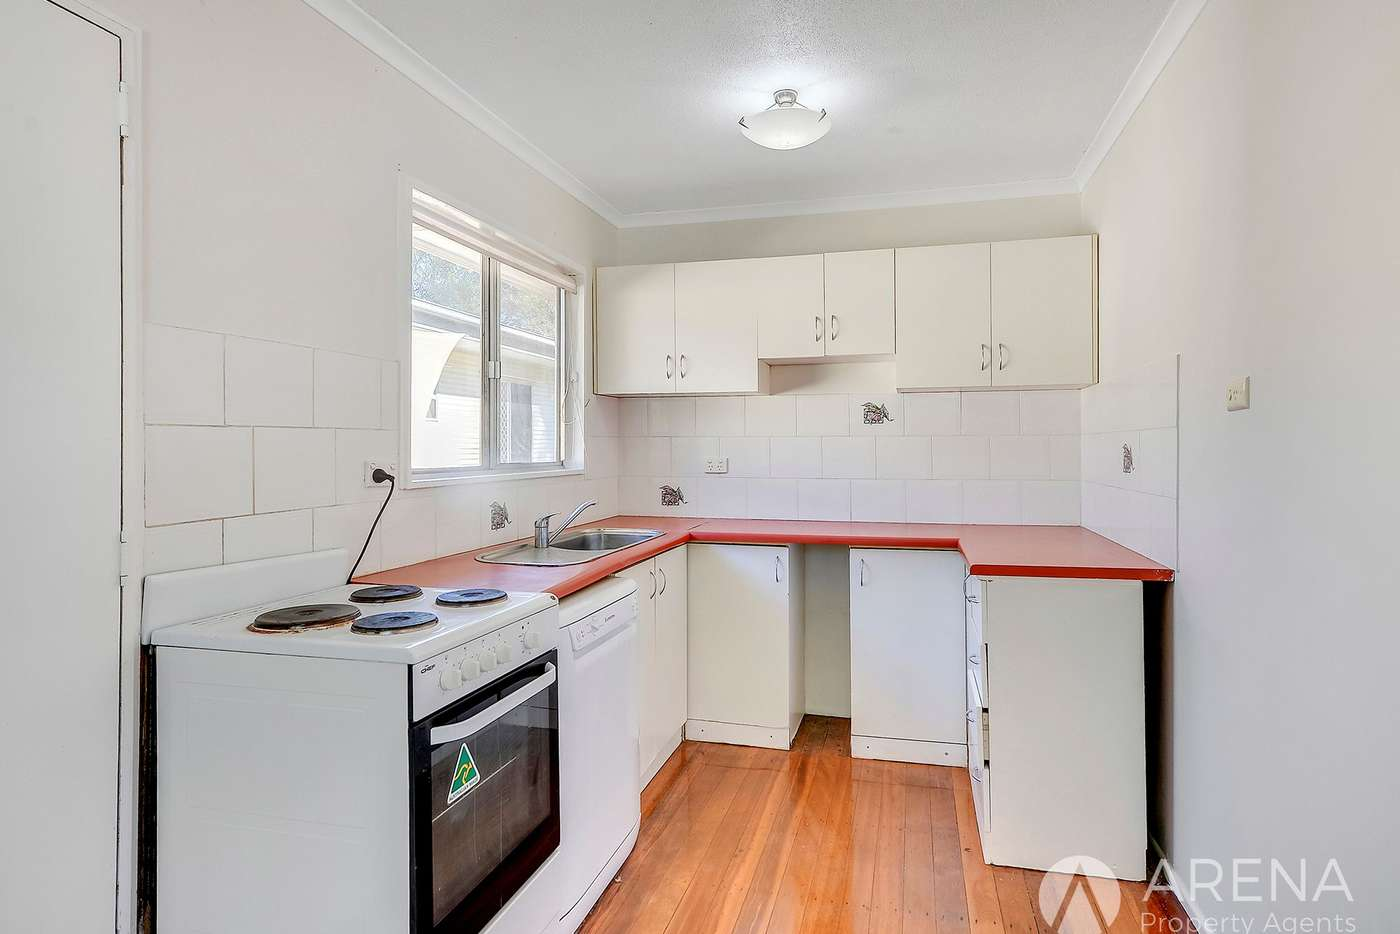 Fifth view of Homely house listing, 99 Saint Andrew Street, Kuraby QLD 4112